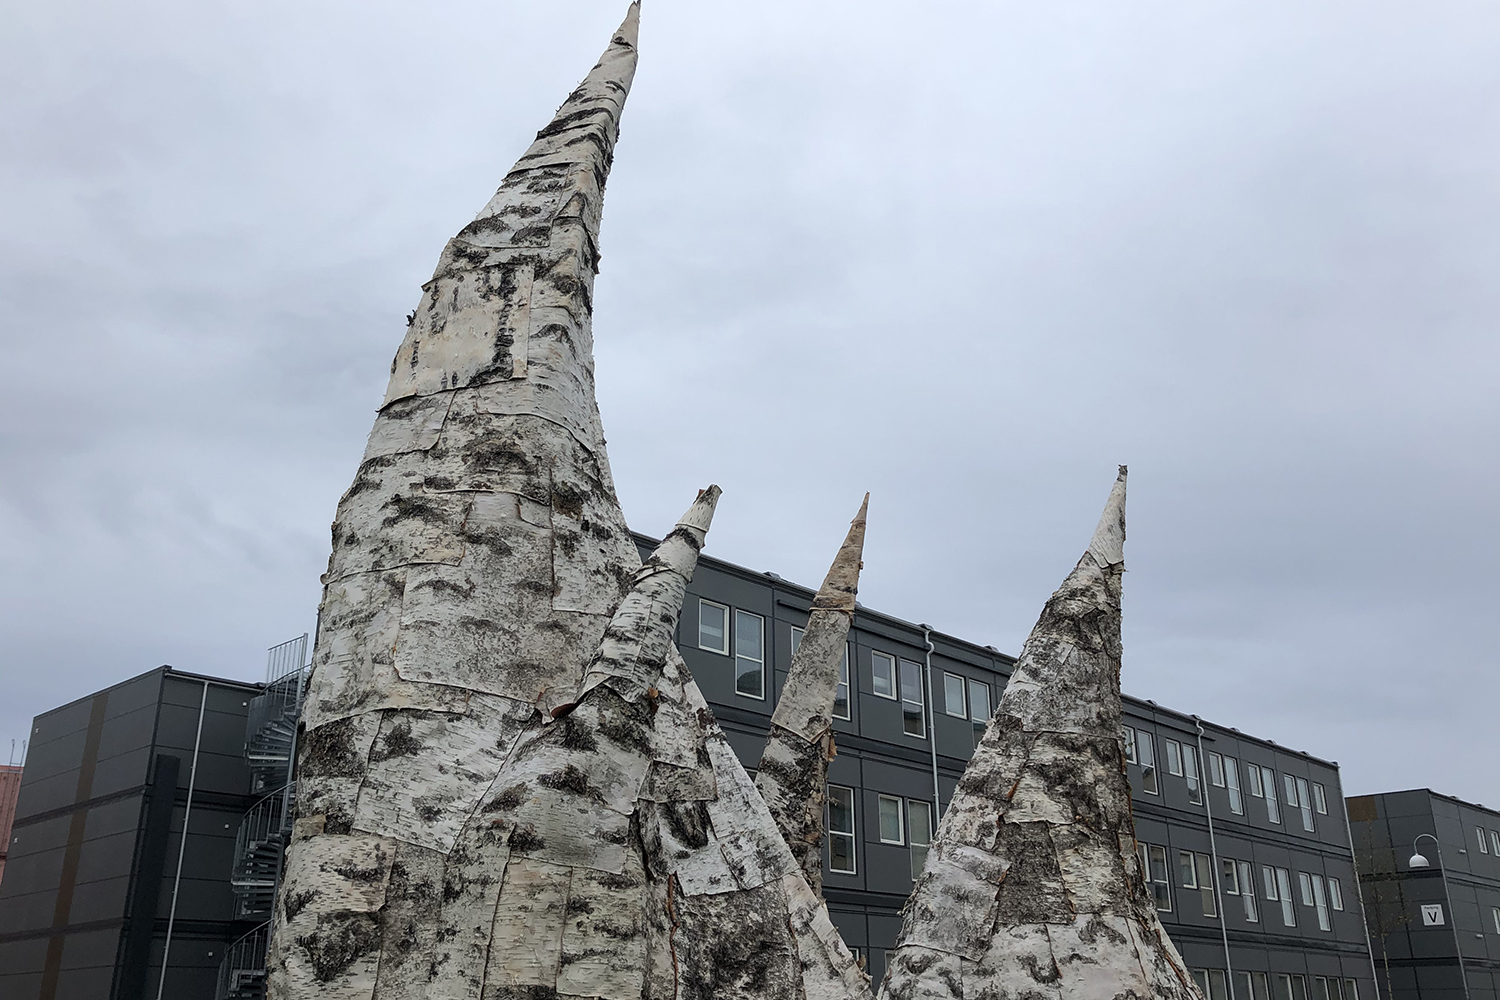 Sculptures made out of birch bark on a green lawn. There's a low building in the background.